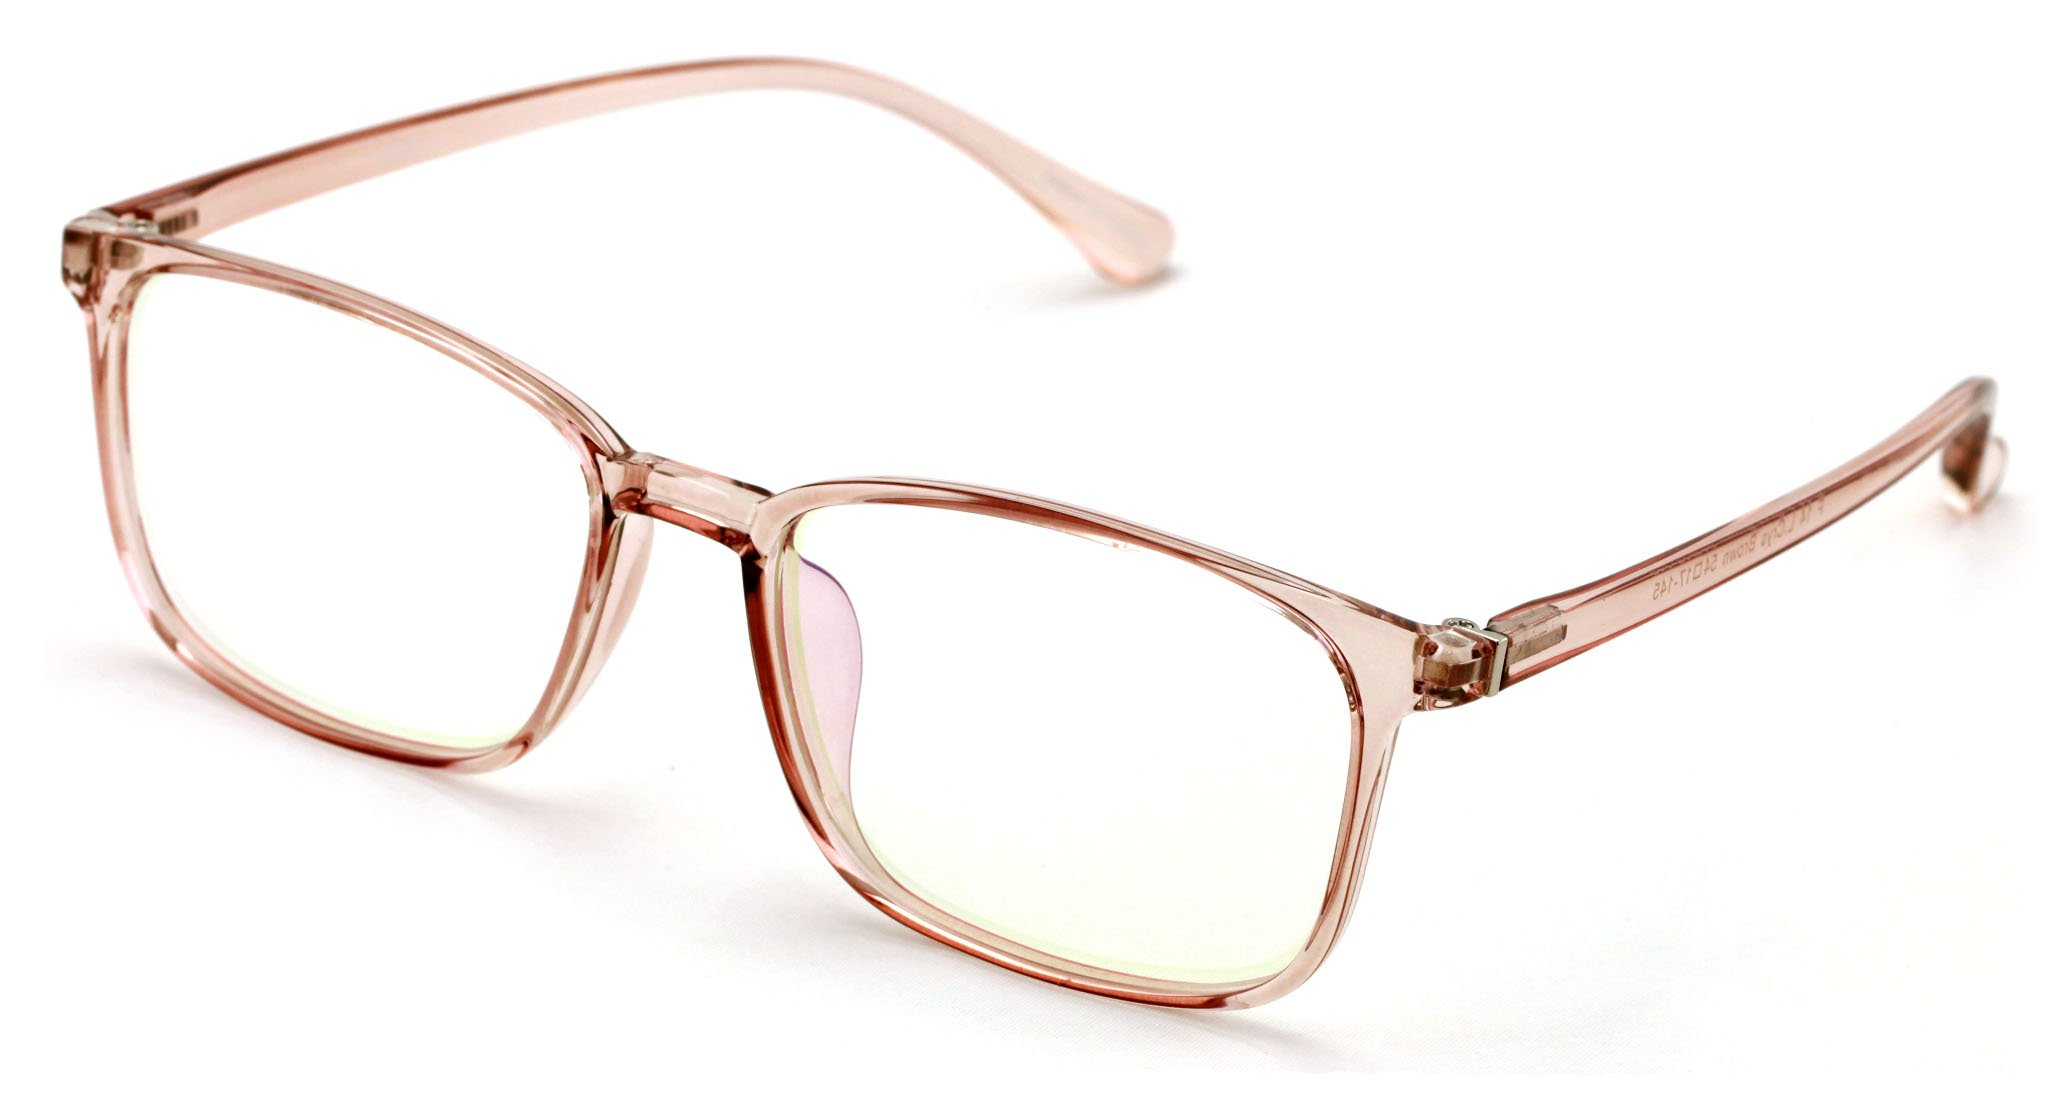 Lightweight Crystal Fashion TR90 Non-prescription Rectangular Glasses Frame Clear Lens Eyeglasses Rx'able (Rose Gold)